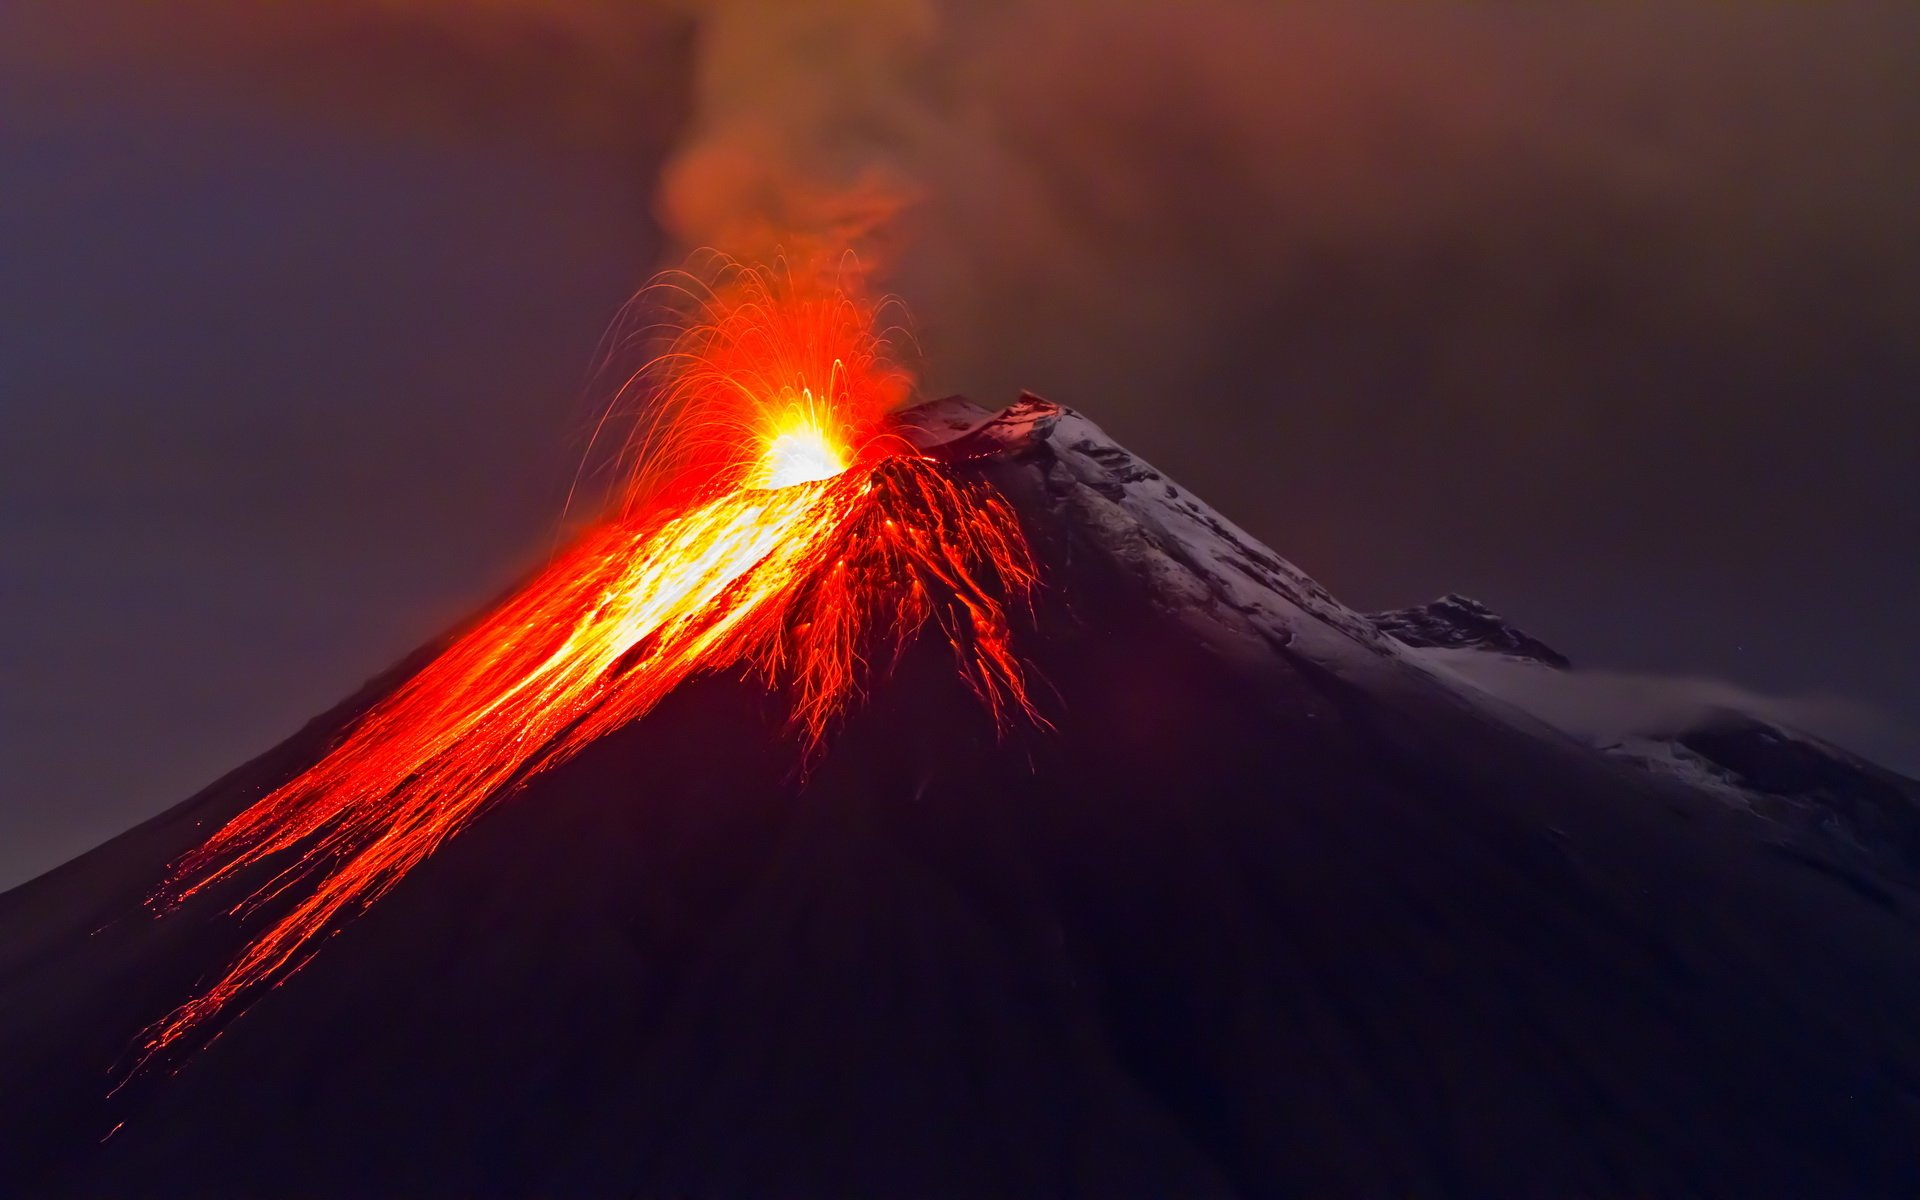 Eruption Of The Volcano With Molten Lava Hd Wallpaper Background Image 1920x1200 Id 596554 Wallpaper Abyss